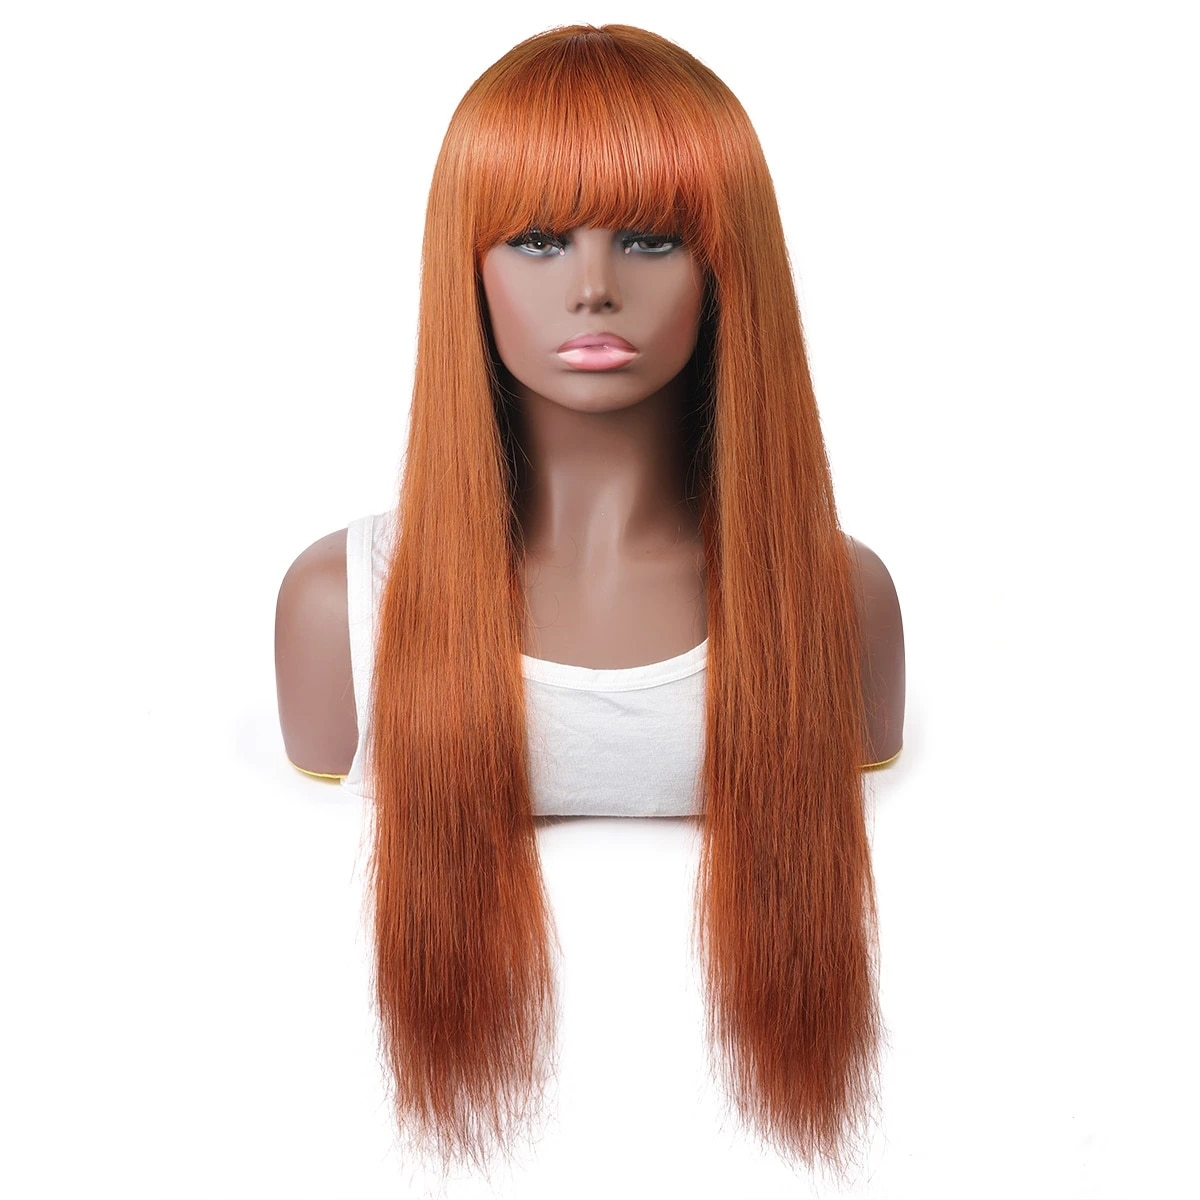 Remy Human Hair Capless costume Wig full Part style Brazilian Hair Straight Wig 130% Density with Baby Hair Natural Hairline